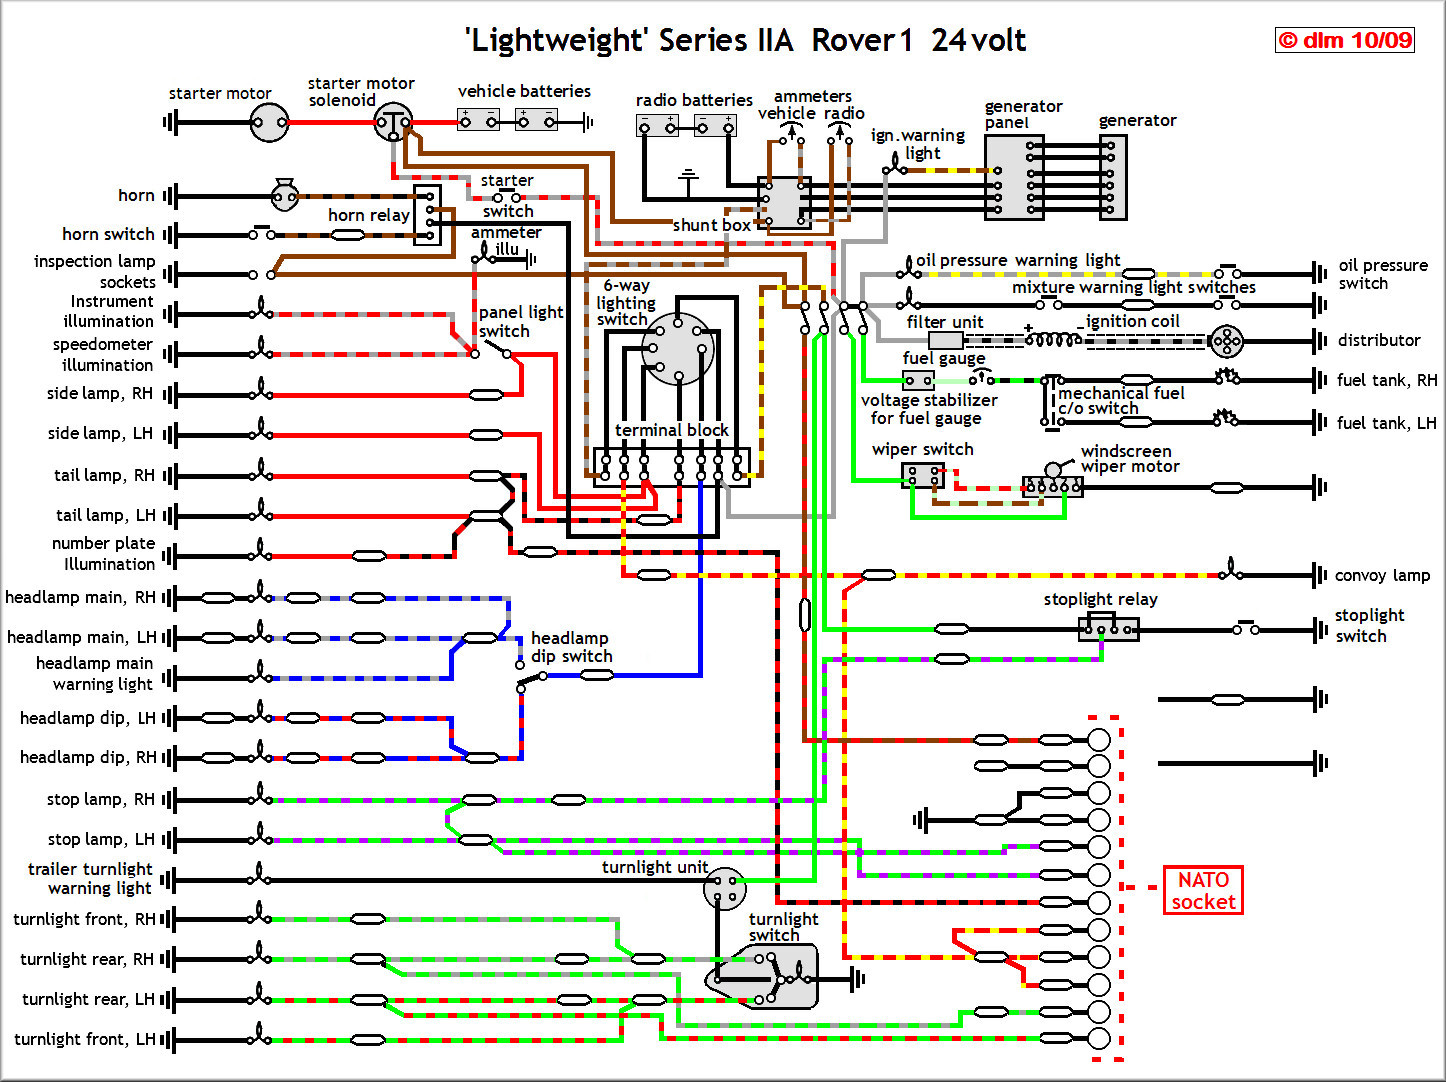 rover1 24Av www land rover lightweight co uk images electrical land rover series 3 wiring loom diagram at fashall.co